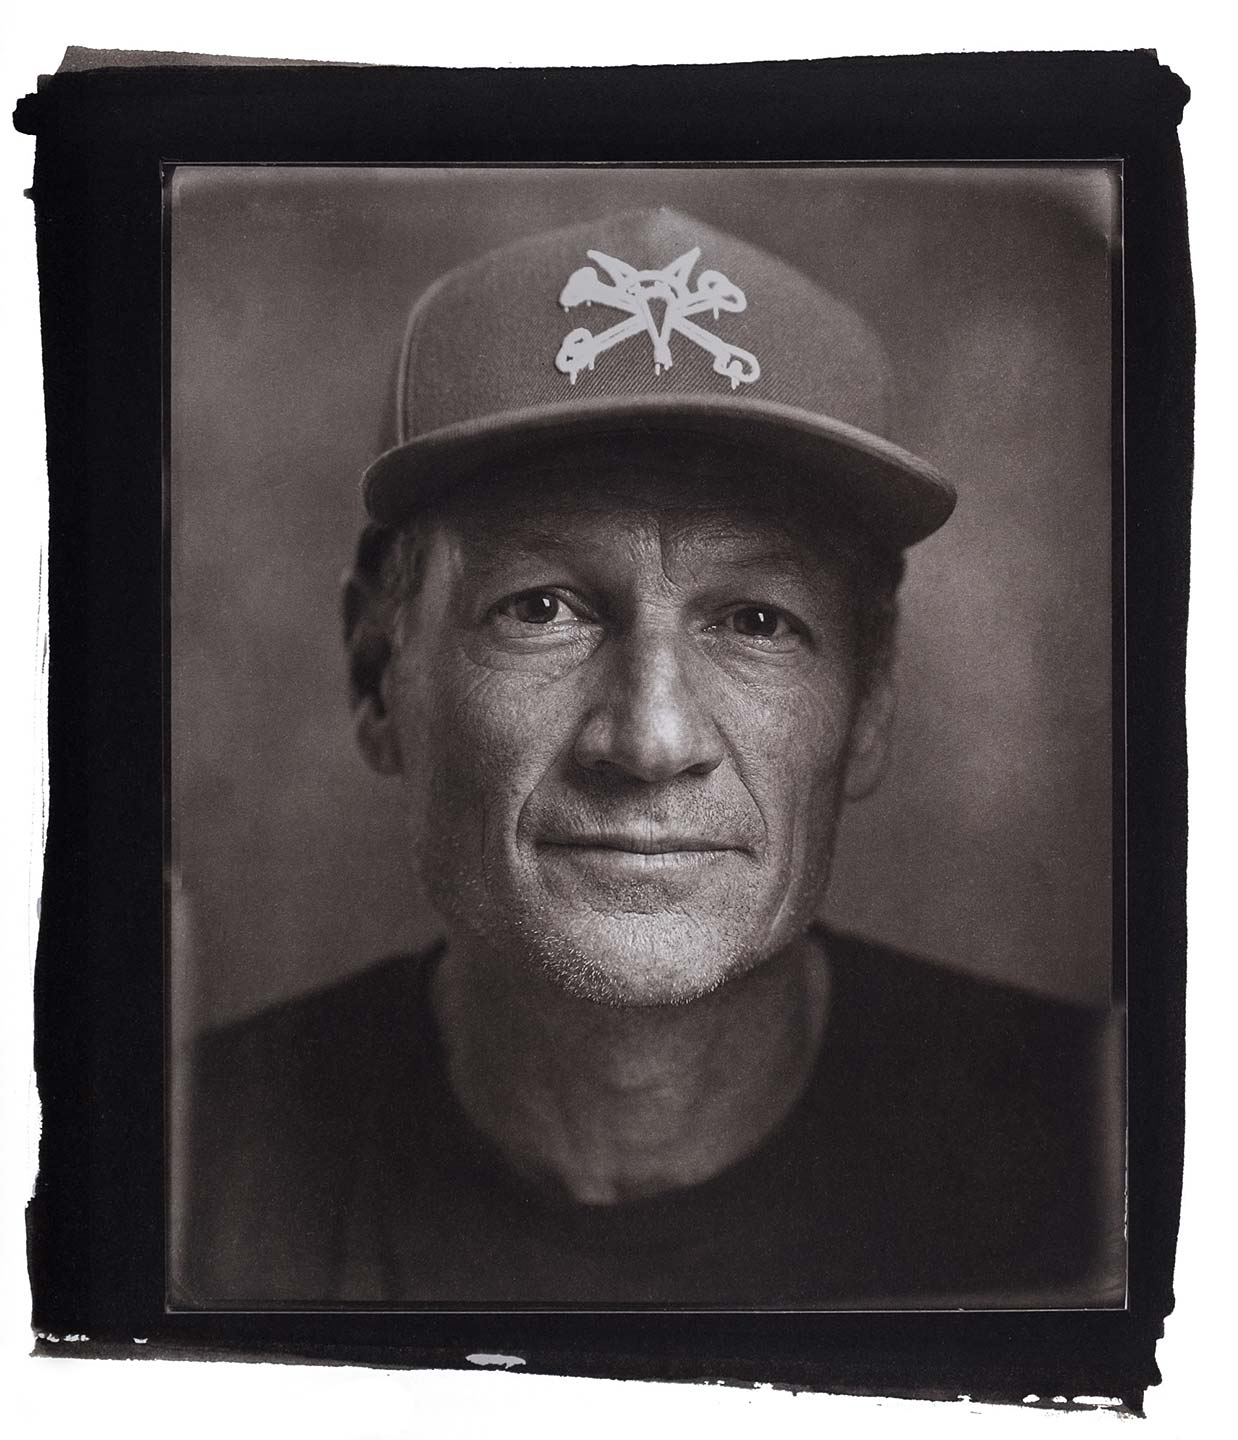 Mike McGill, Skateboard Legend, former Bones Brigade team member no 1